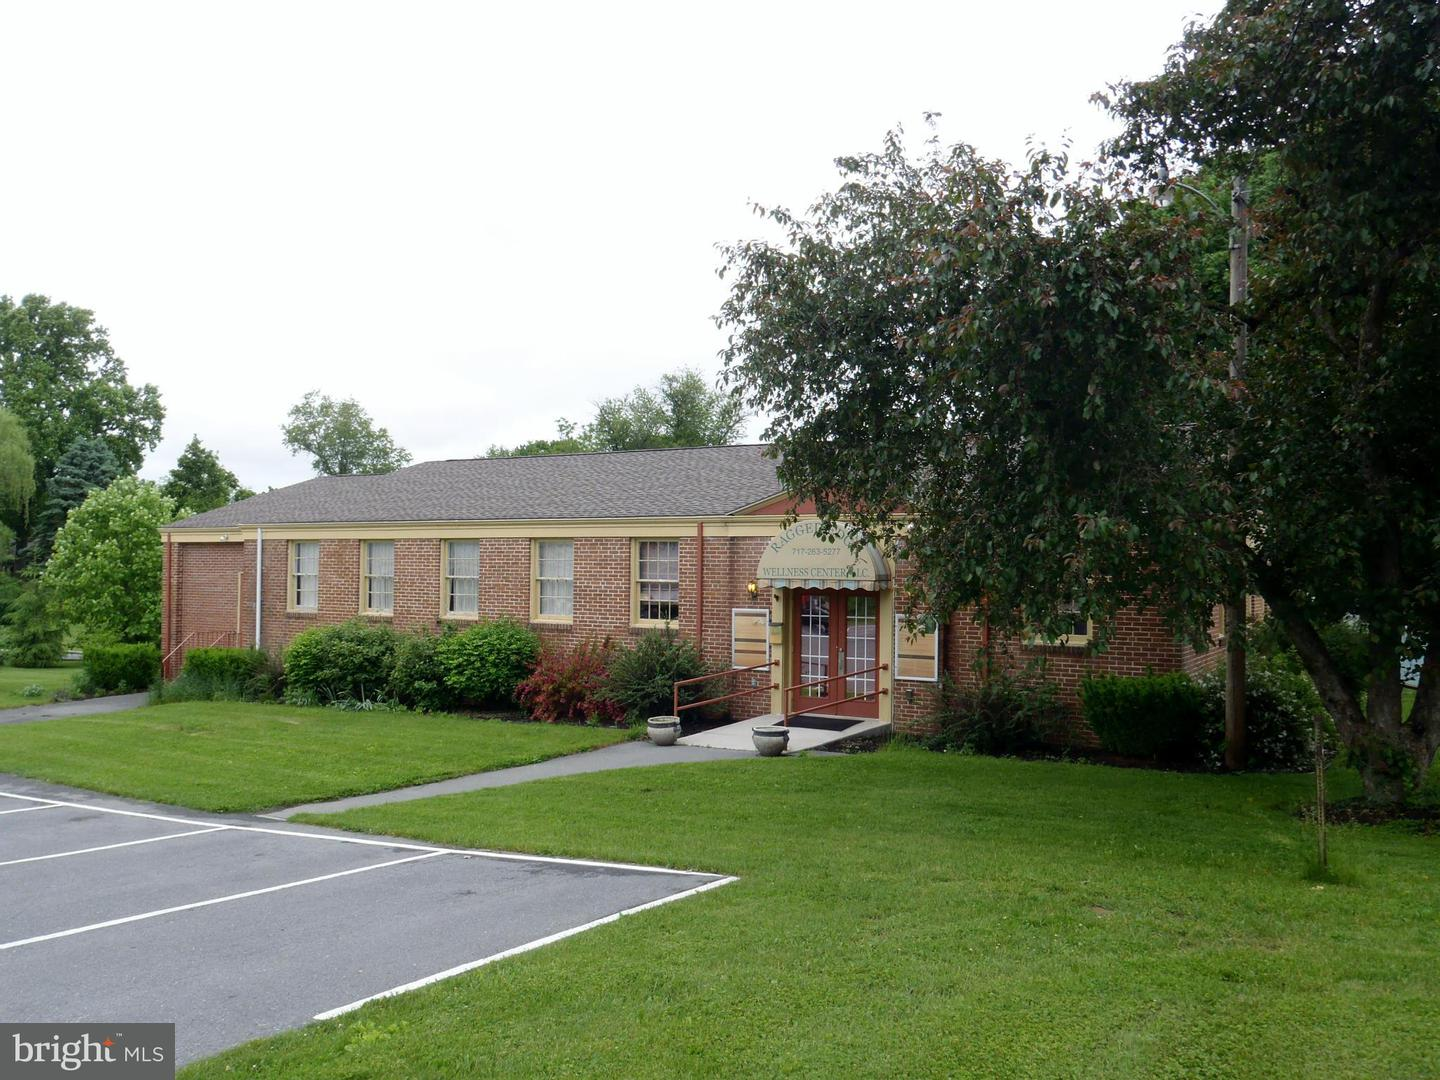 Commercial for Sale at 35 Ragged Edge Rd Chambersburg, Pennsylvania 17202 United States